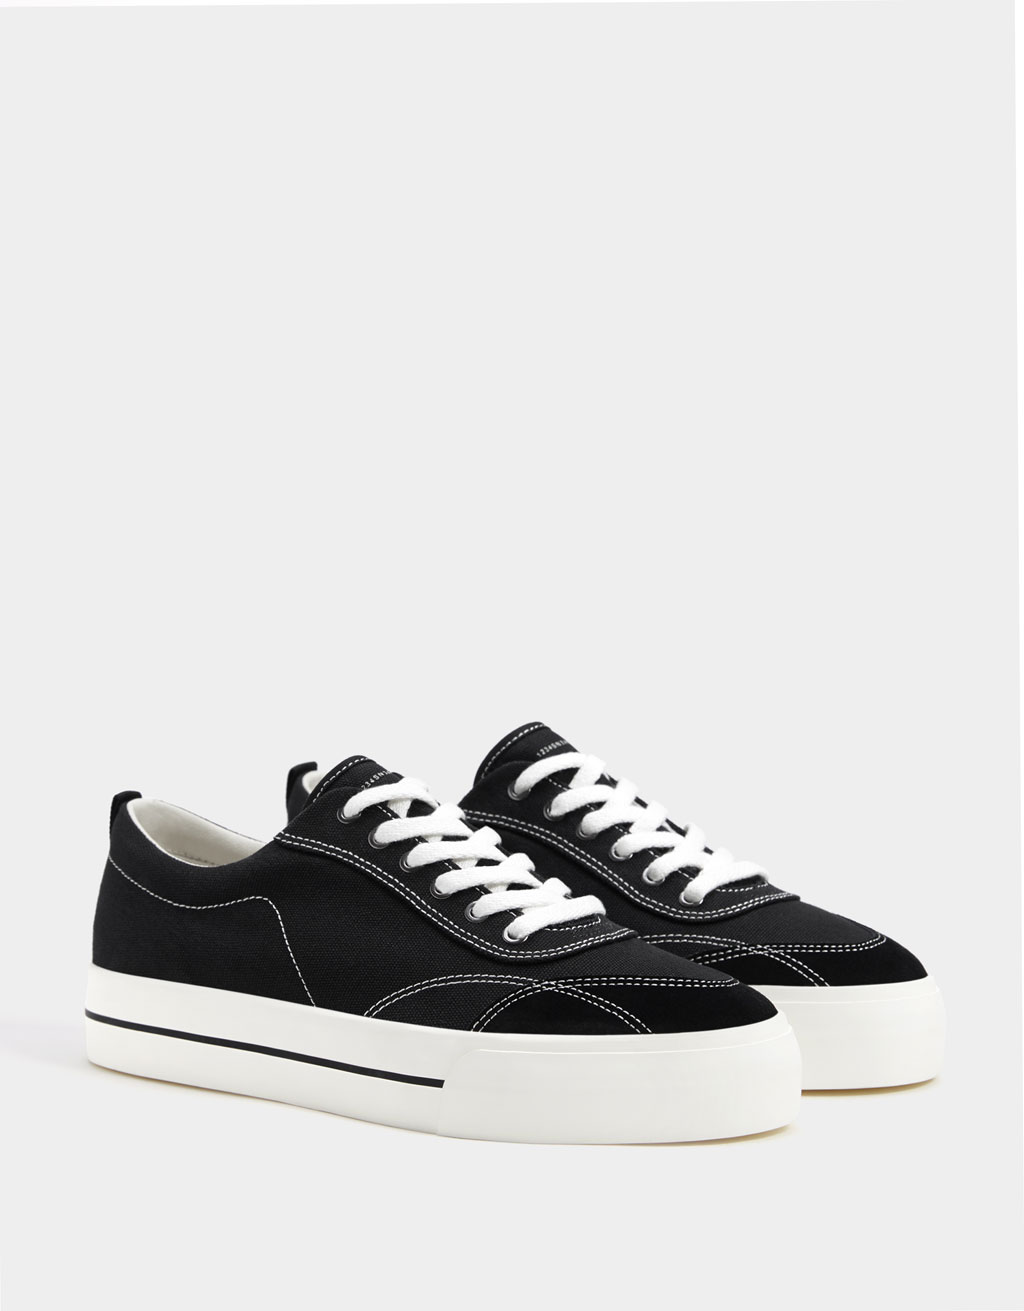 Men's trainers with contrast topstitching